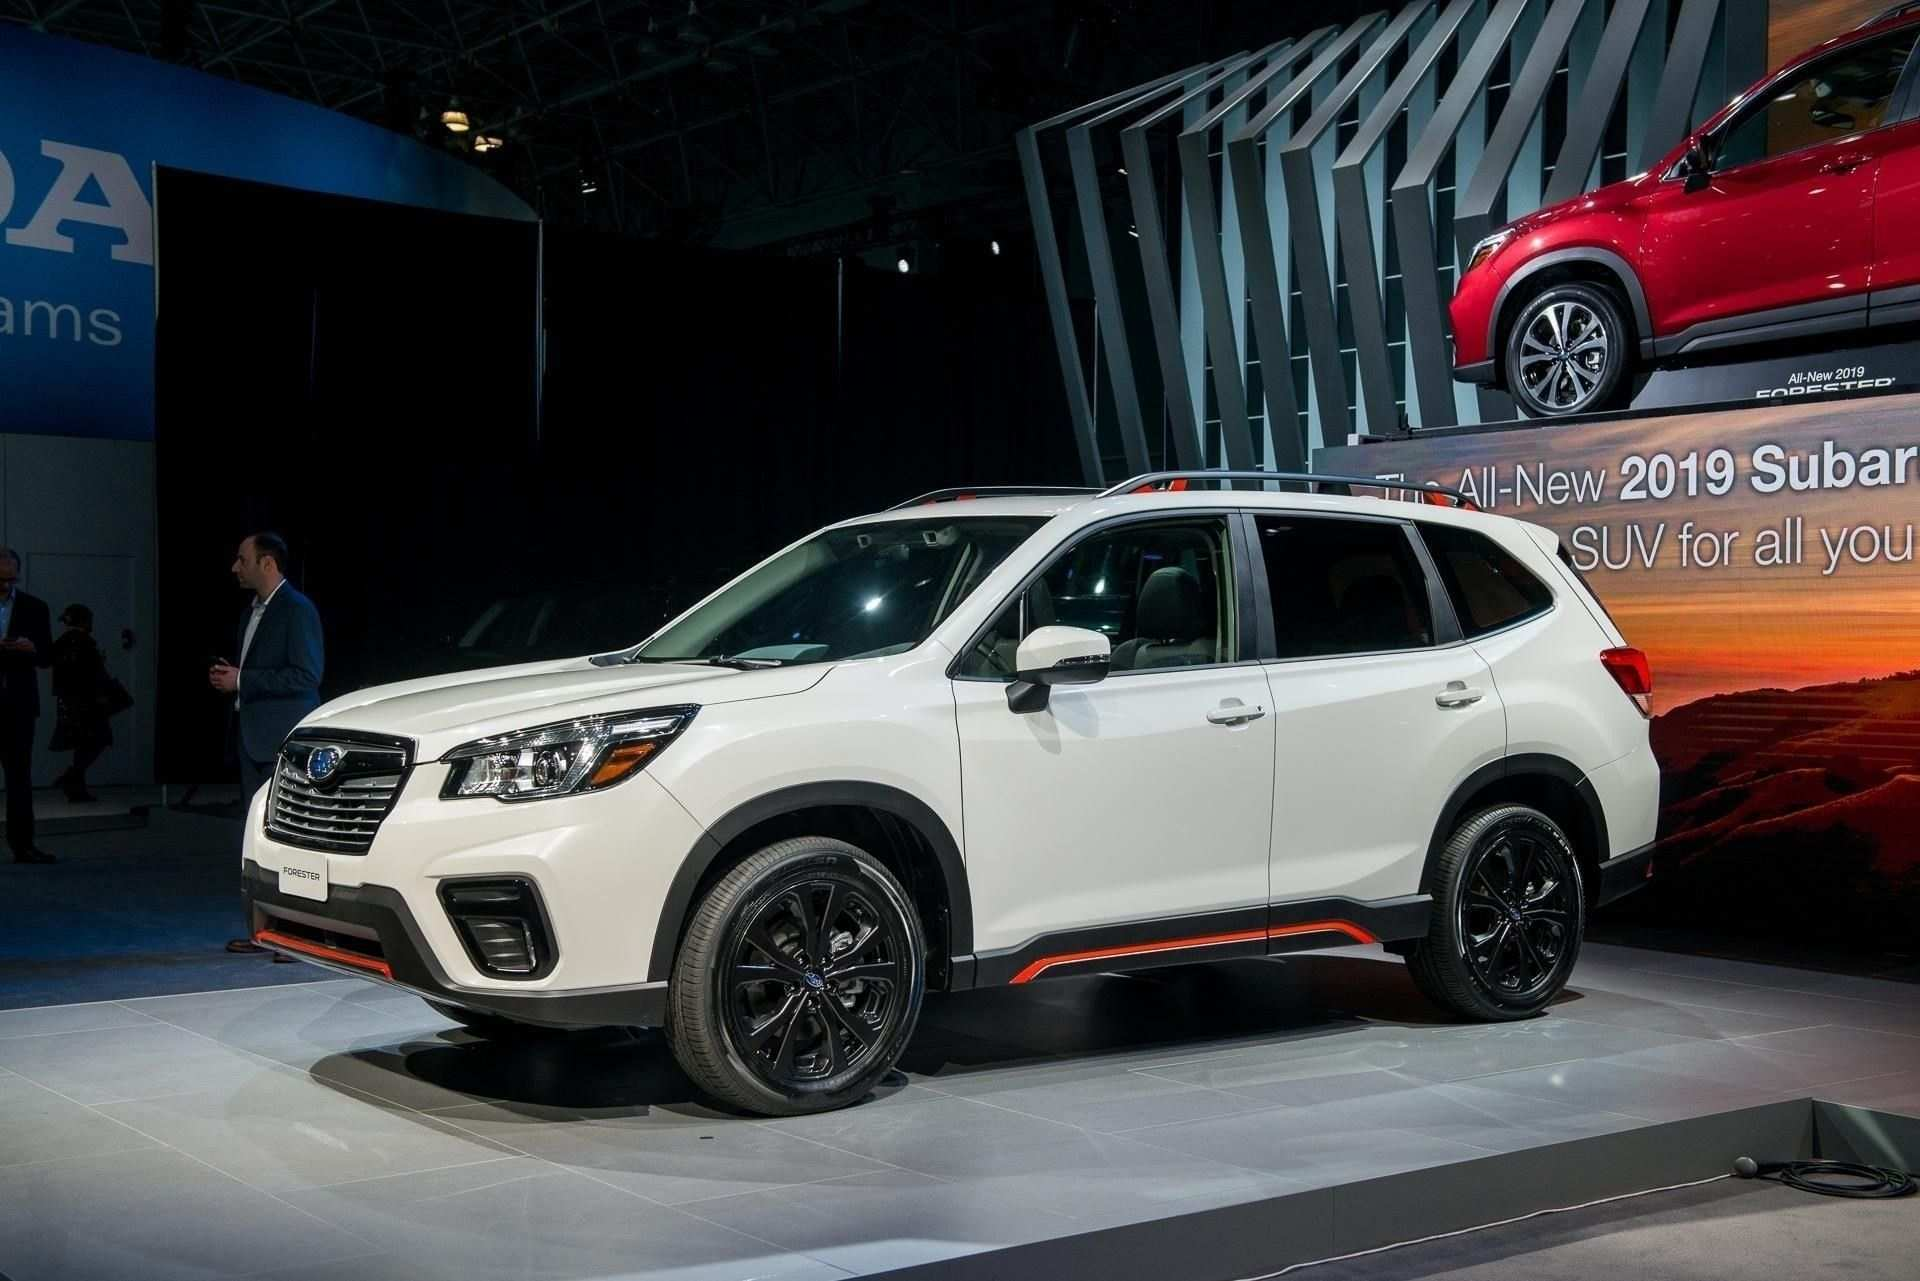 25 New The Release Date Of Subaru 2019 Forester Picture Release Date And Review Specs and Review with The Release Date Of Subaru 2019 Forester Picture Release Date And Review